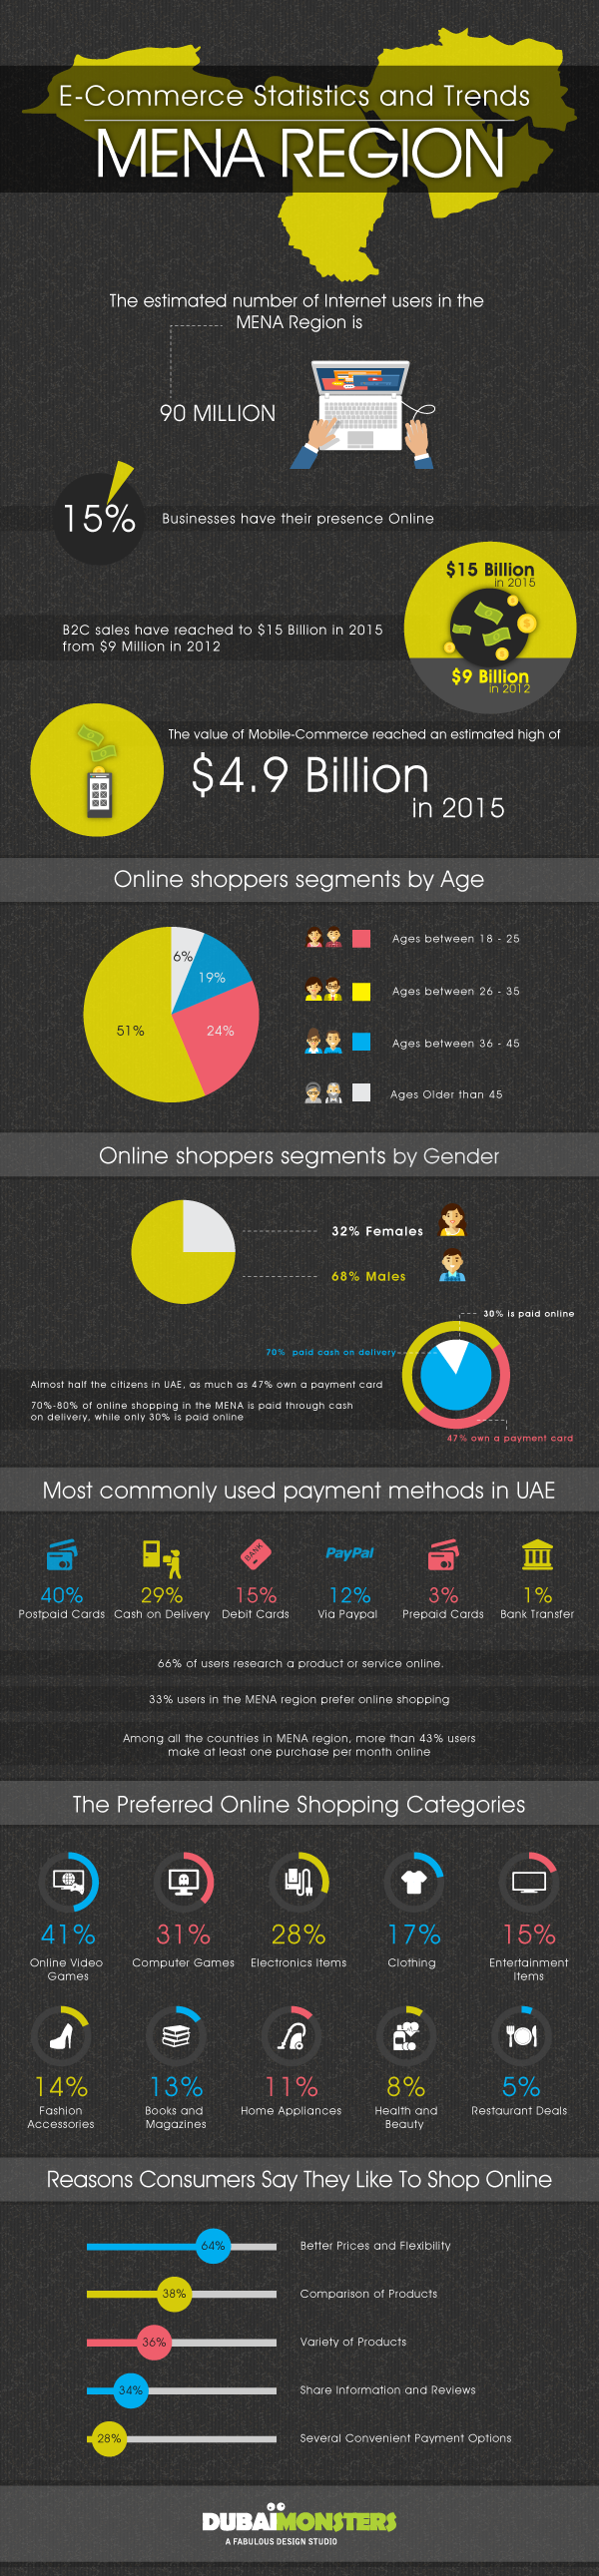 Trends of Ecommerce in the UAE